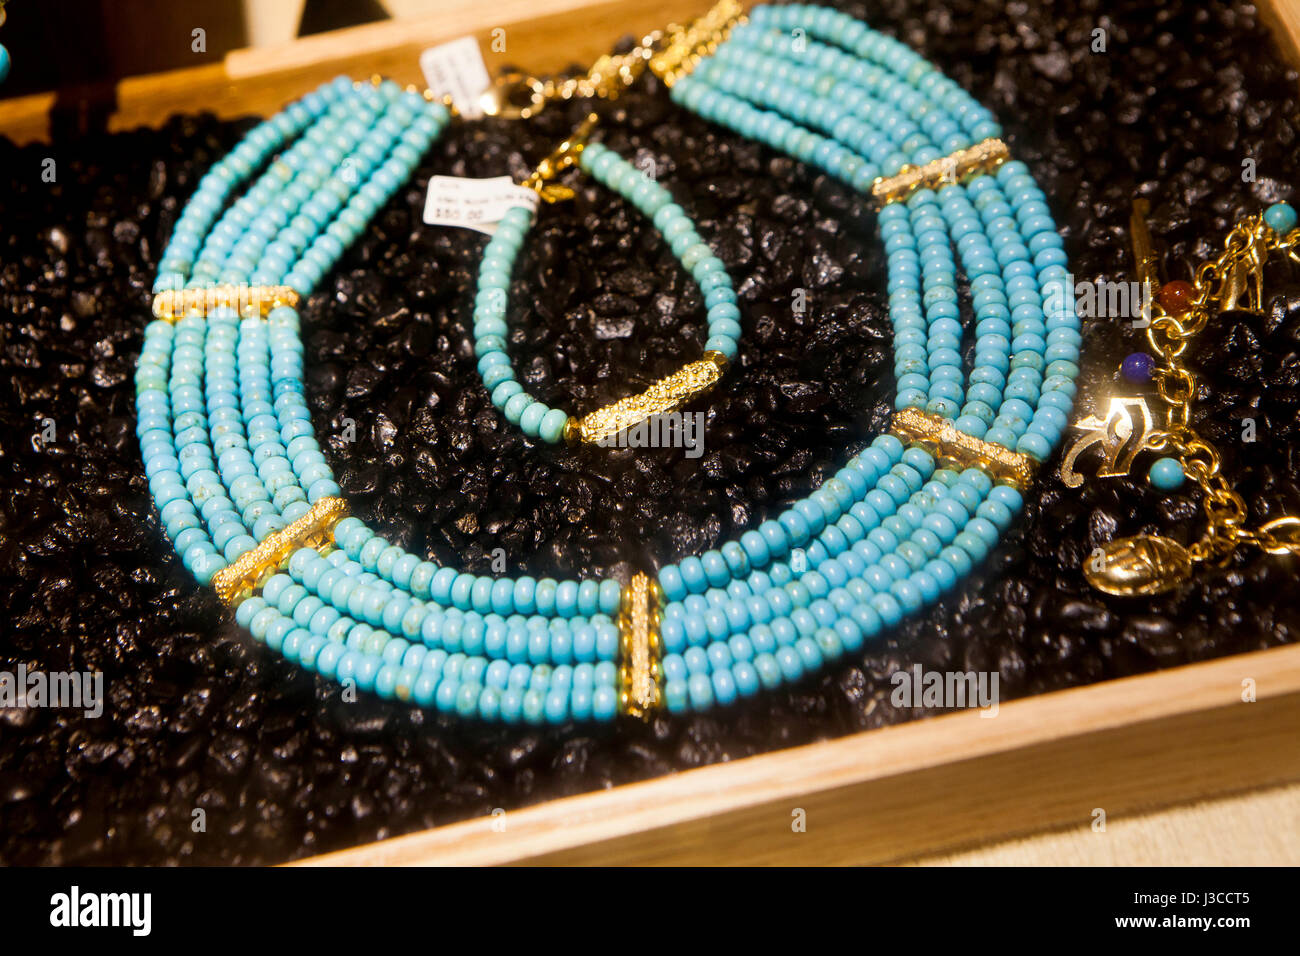 Turquoise necklace on display at jewelry store - USA - Stock Image